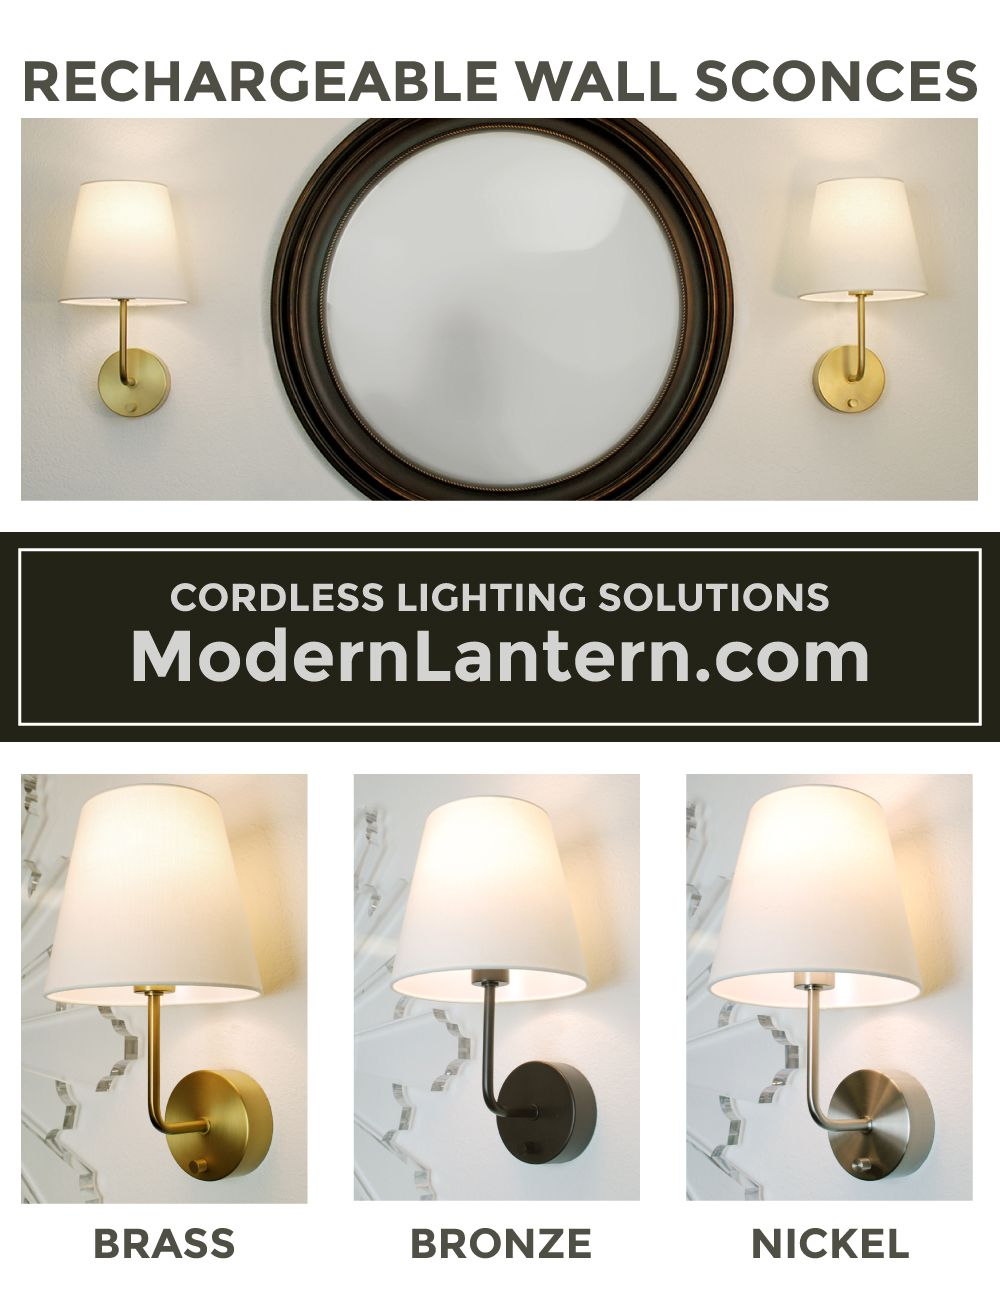 Cordless Wall Sconce By Modern Lantern Battery Operated Wall Sconce Sconces Wall Sconces